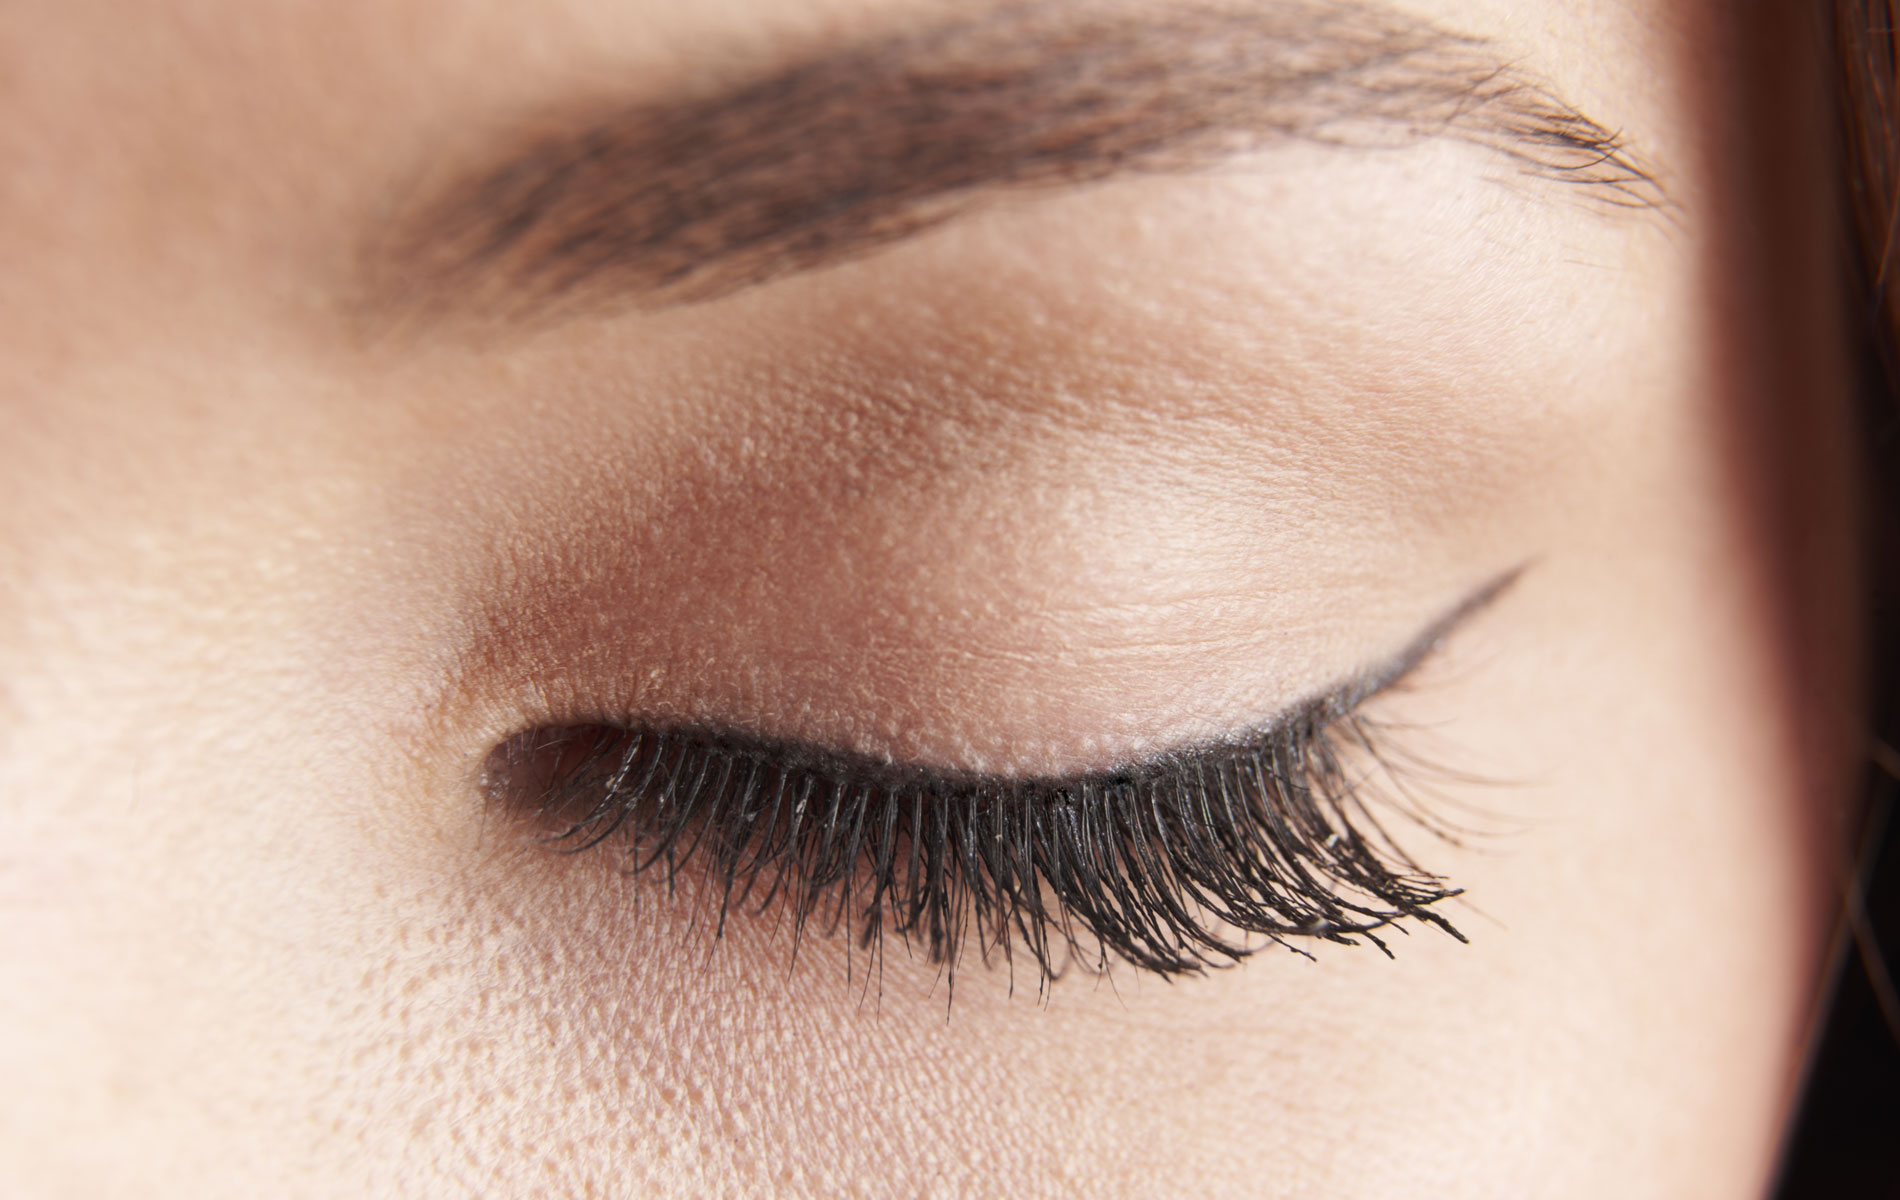 Blepharoplasty Procedure: Everything You Need To Know